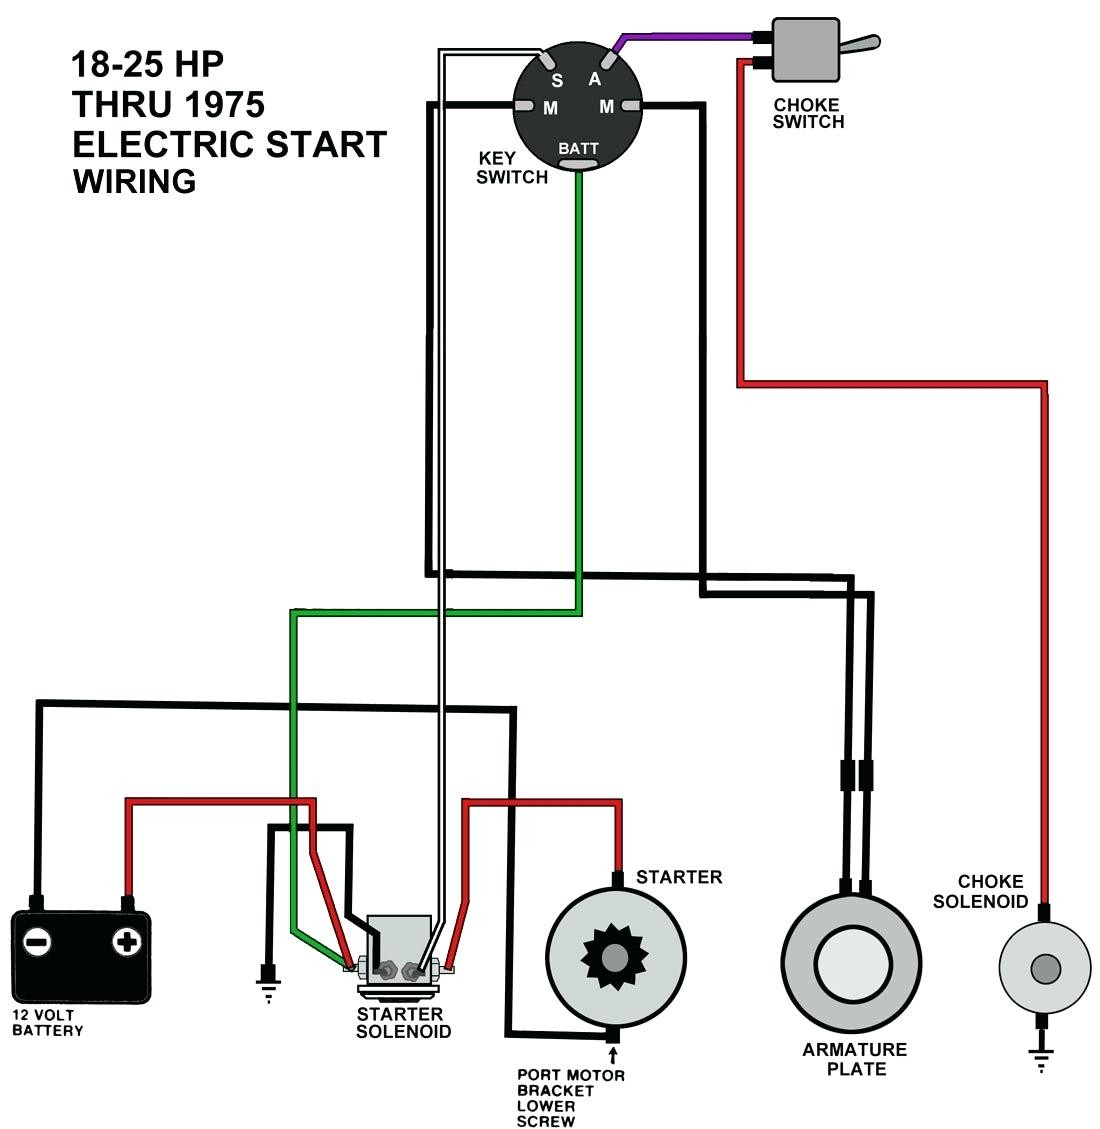 hight resolution of yamaha starter switch wiring wiring diagram paper yamaha starter generator wiring diagram yamaha starter motor wiring